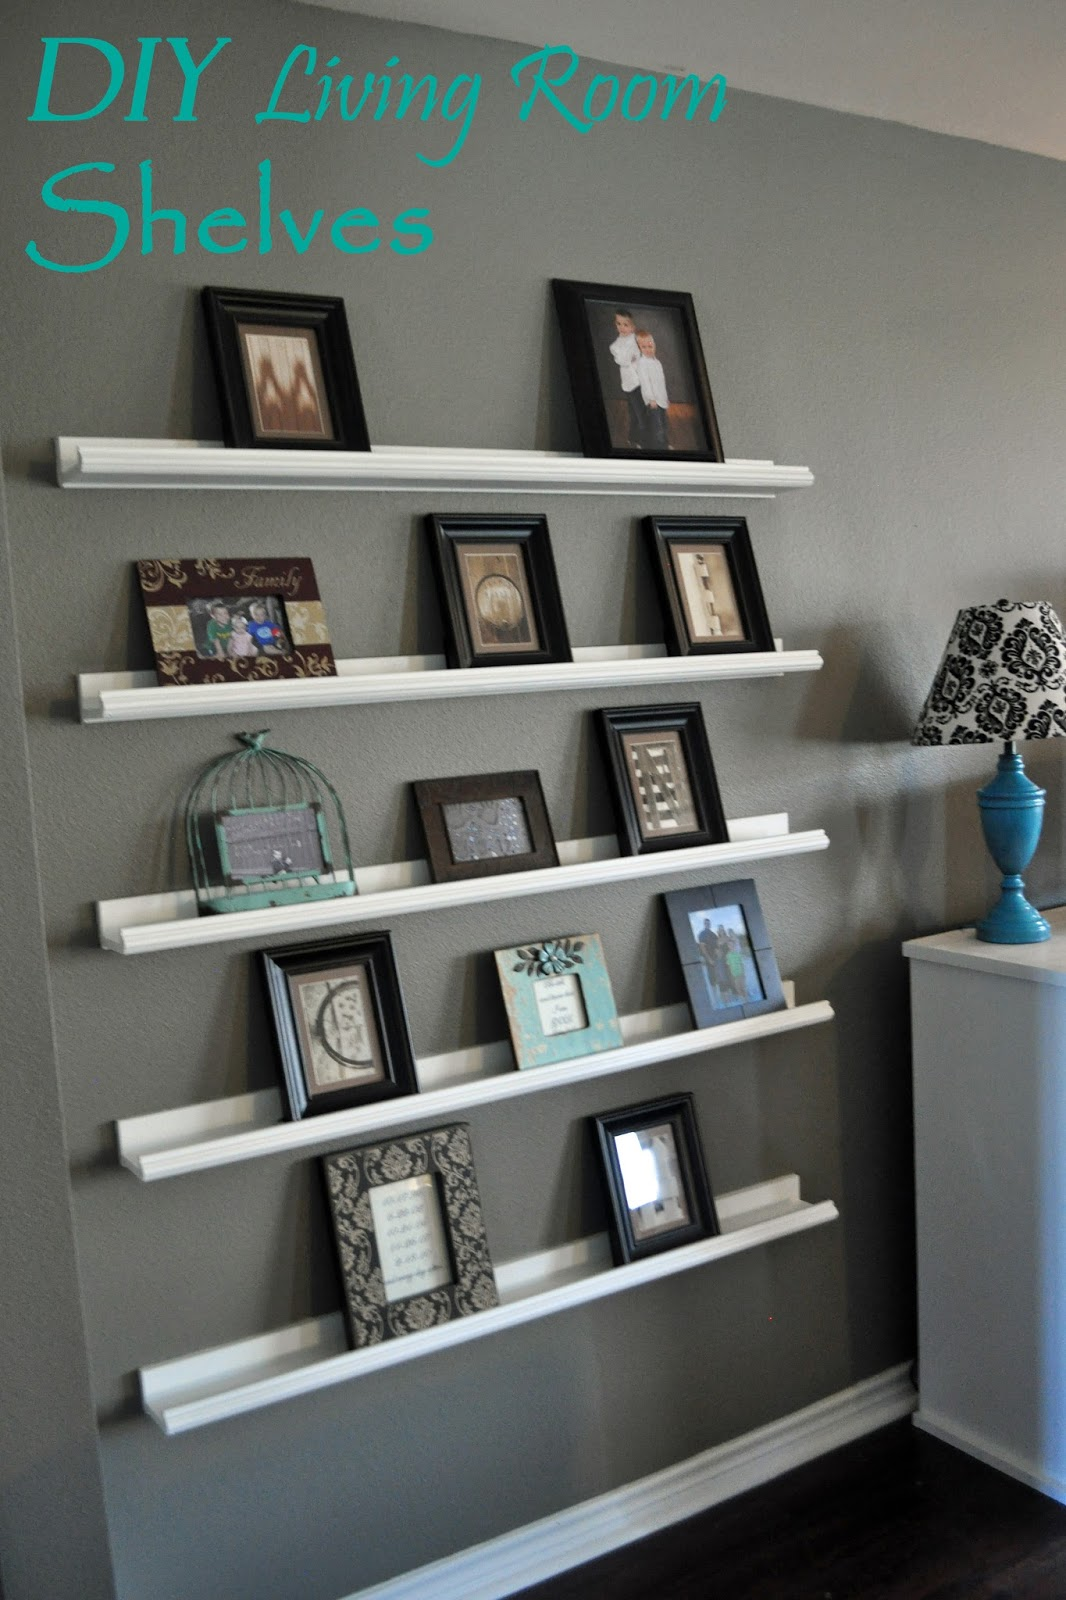 Living Room Decorating Ideas Floating Shelves Right Where We Are Diy Shelving For Picture Frames